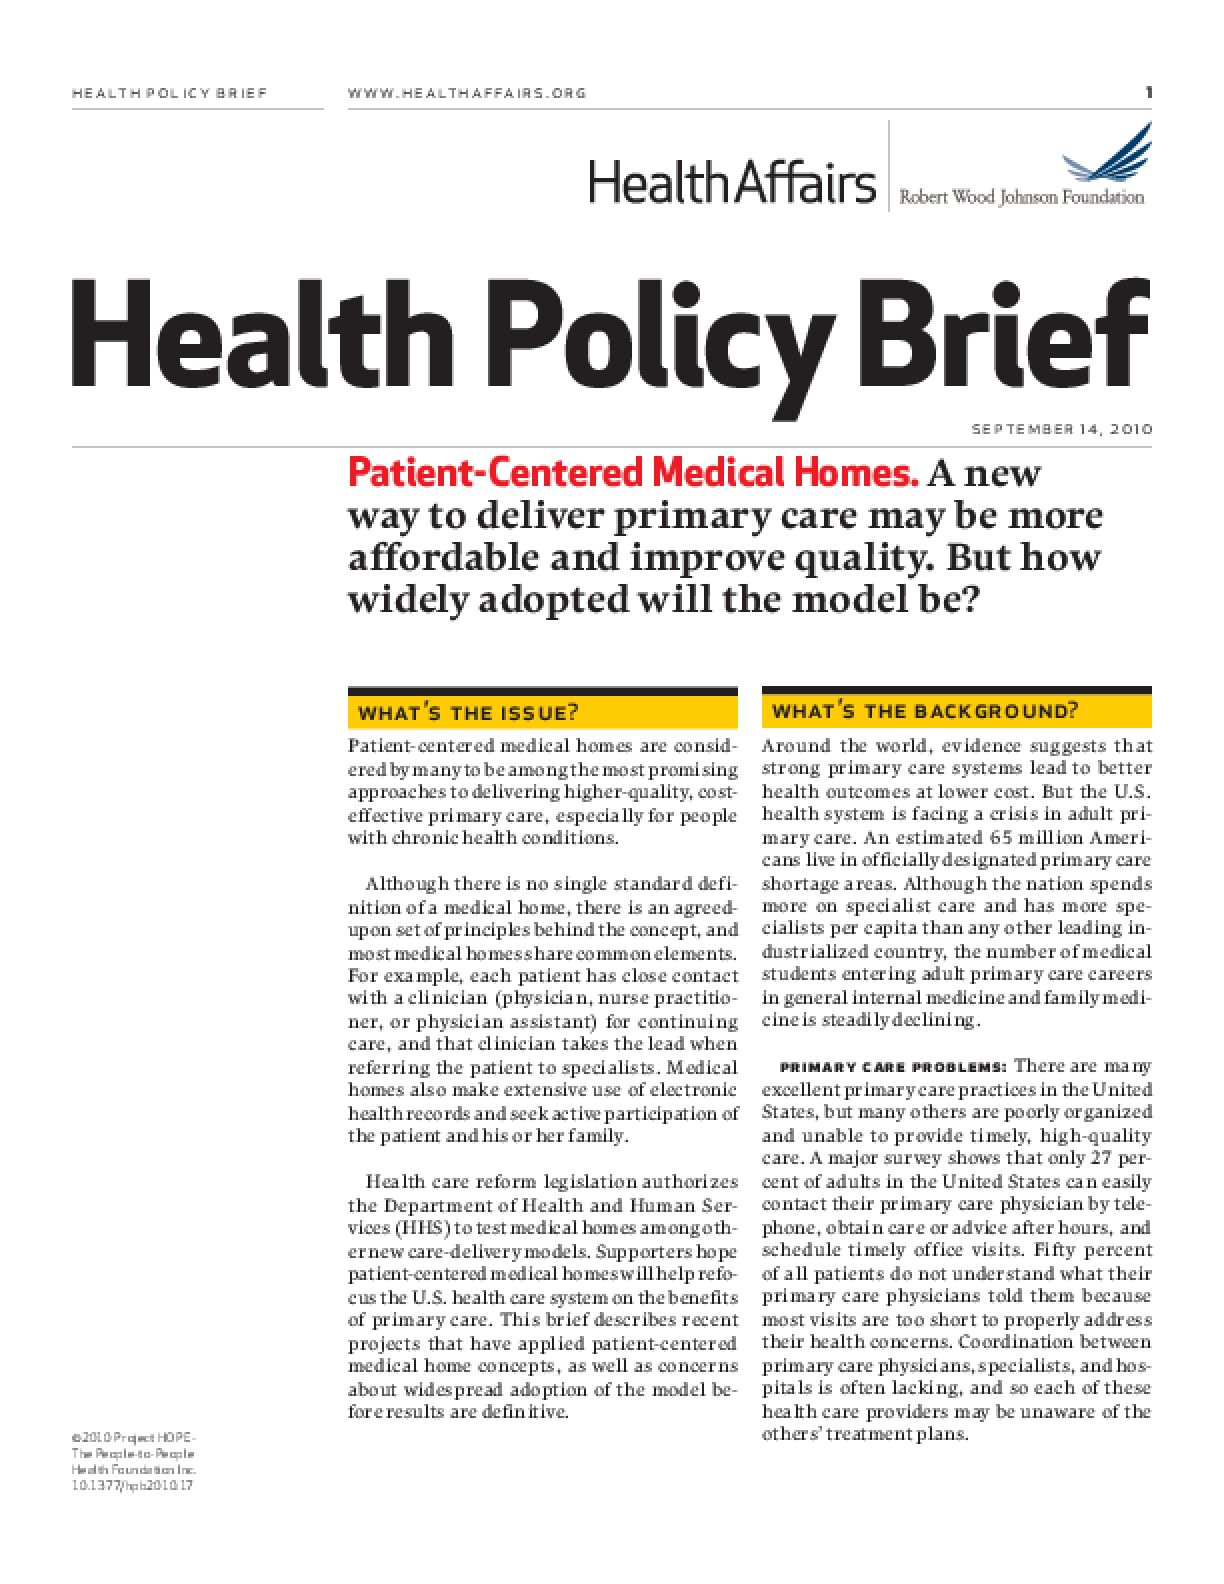 Health Affairs/RWJF Health Policy Brief: Patient-Centered Medical Homes